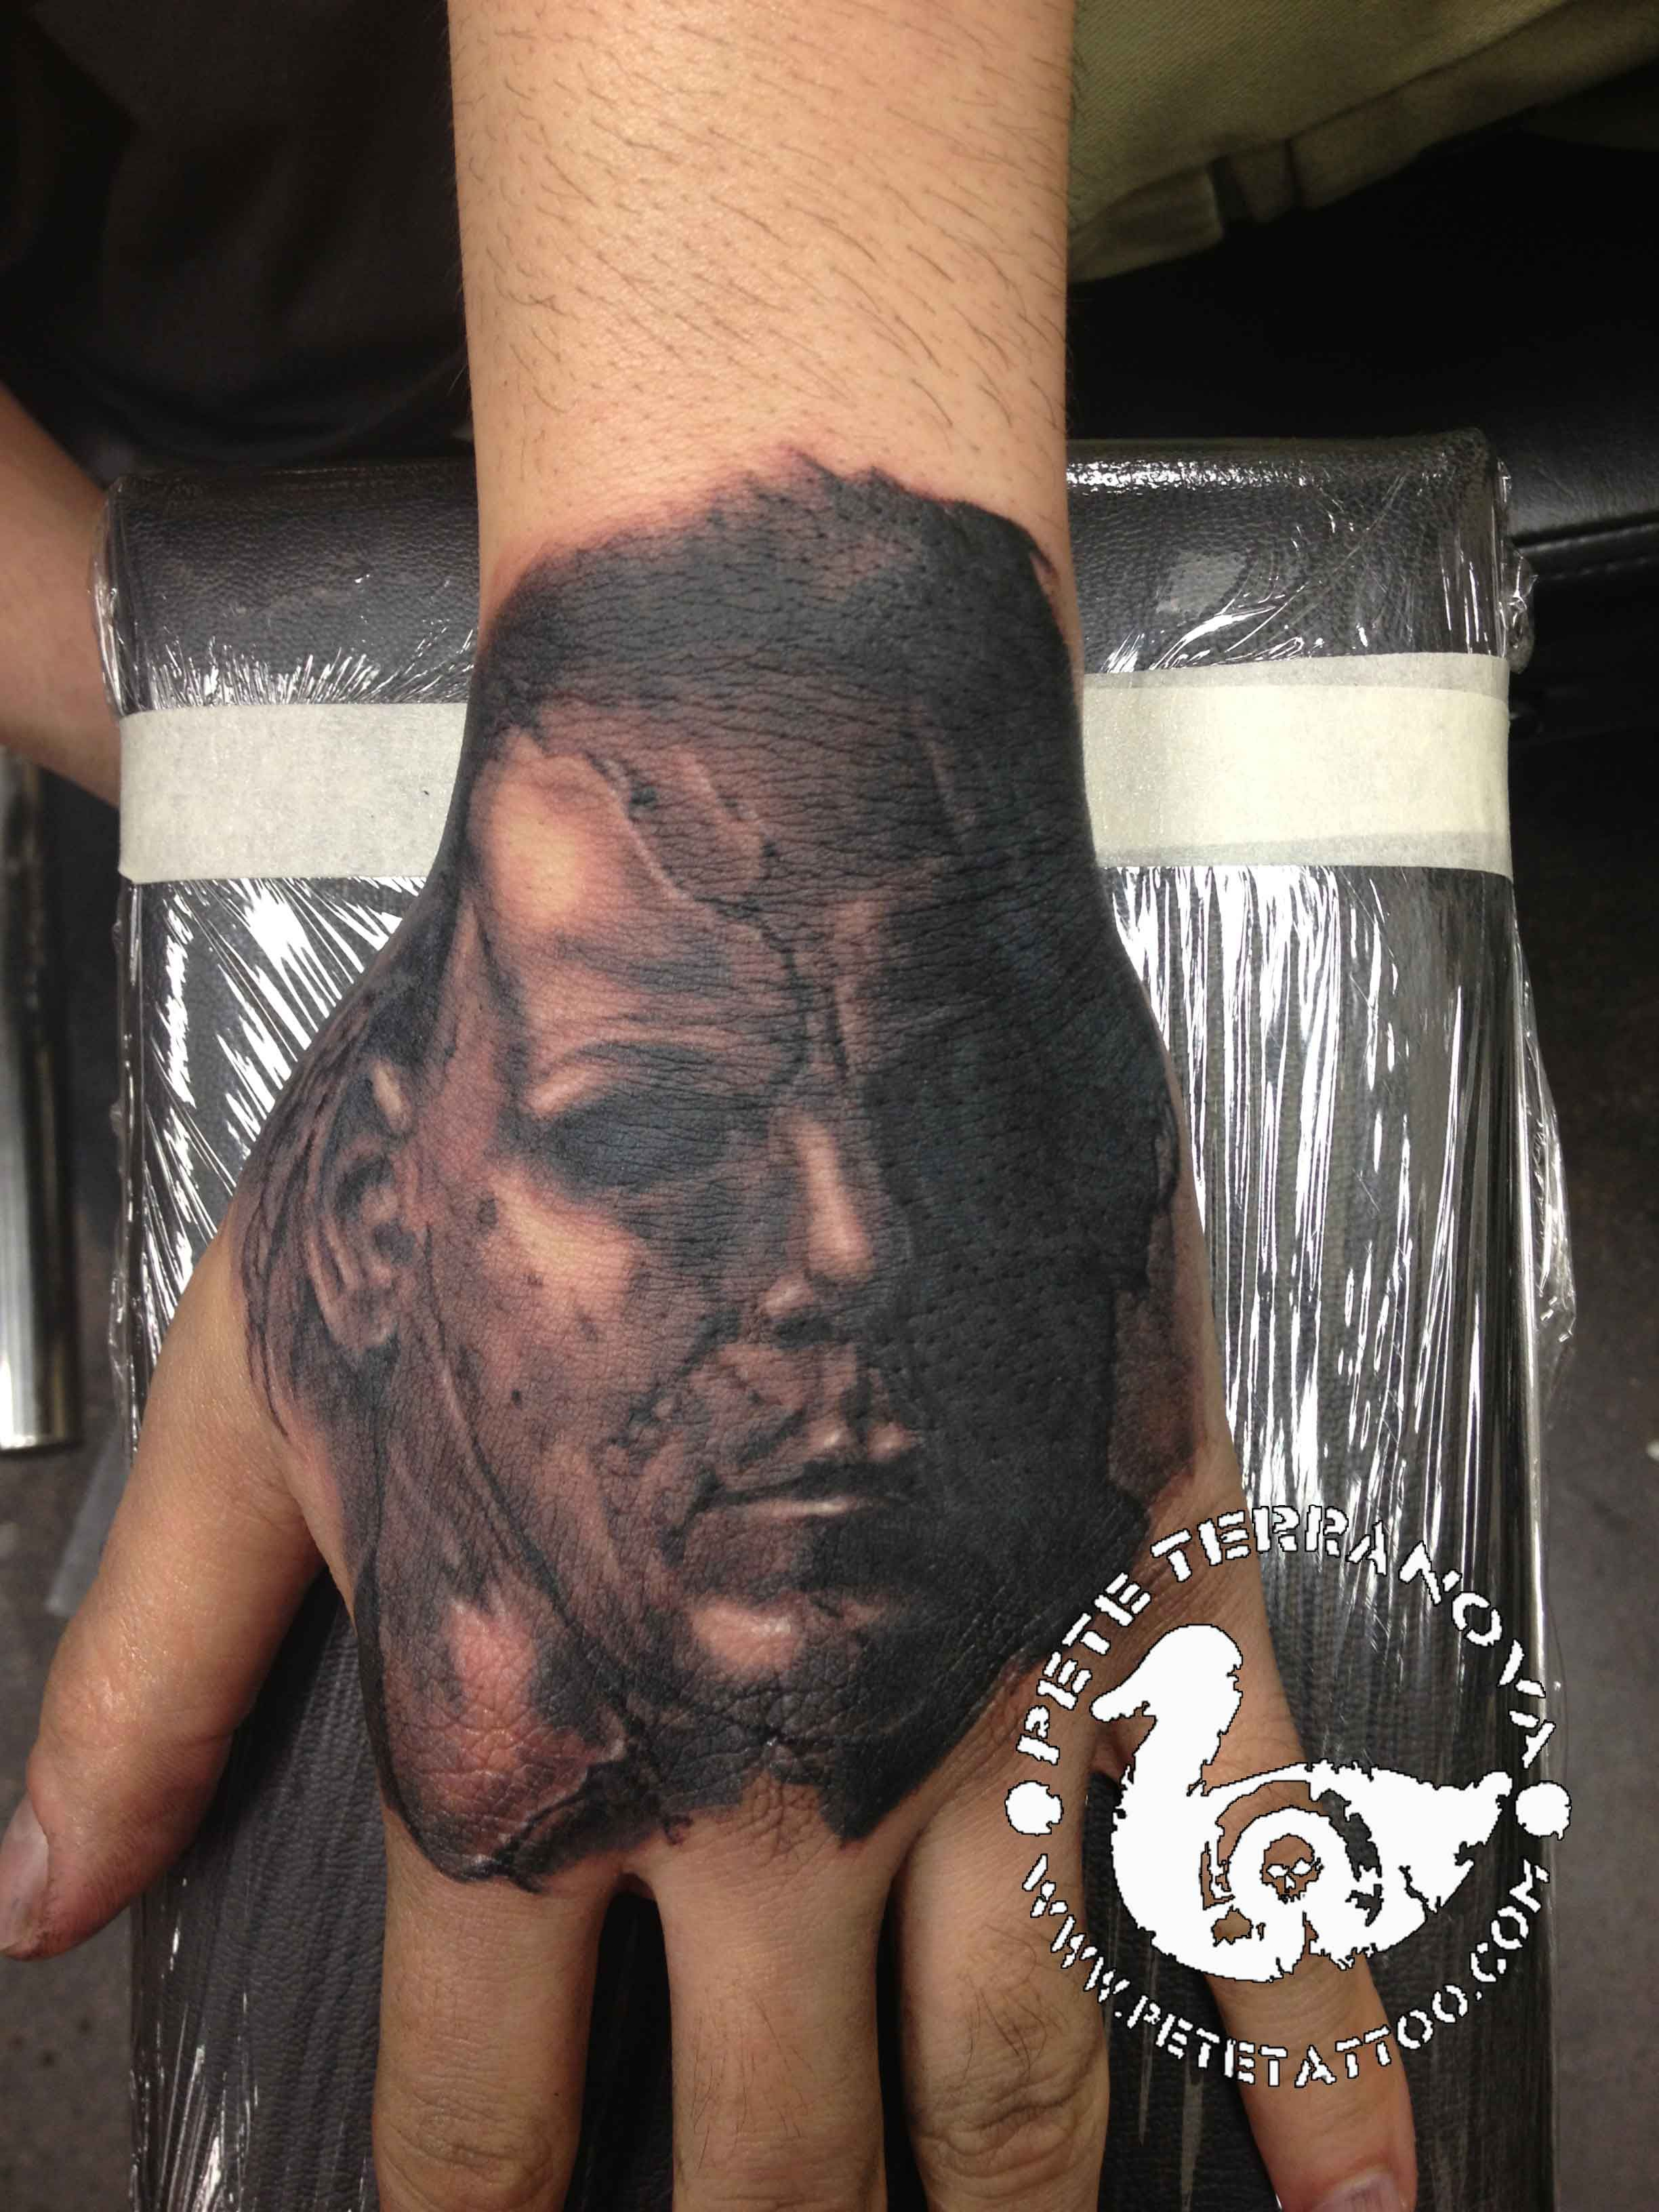 Black Hand Tattoo Meaning : black, tattoo, meaning, Black, Michael, Myers, Tattoo, Tattoo,, Myers,, Micheal